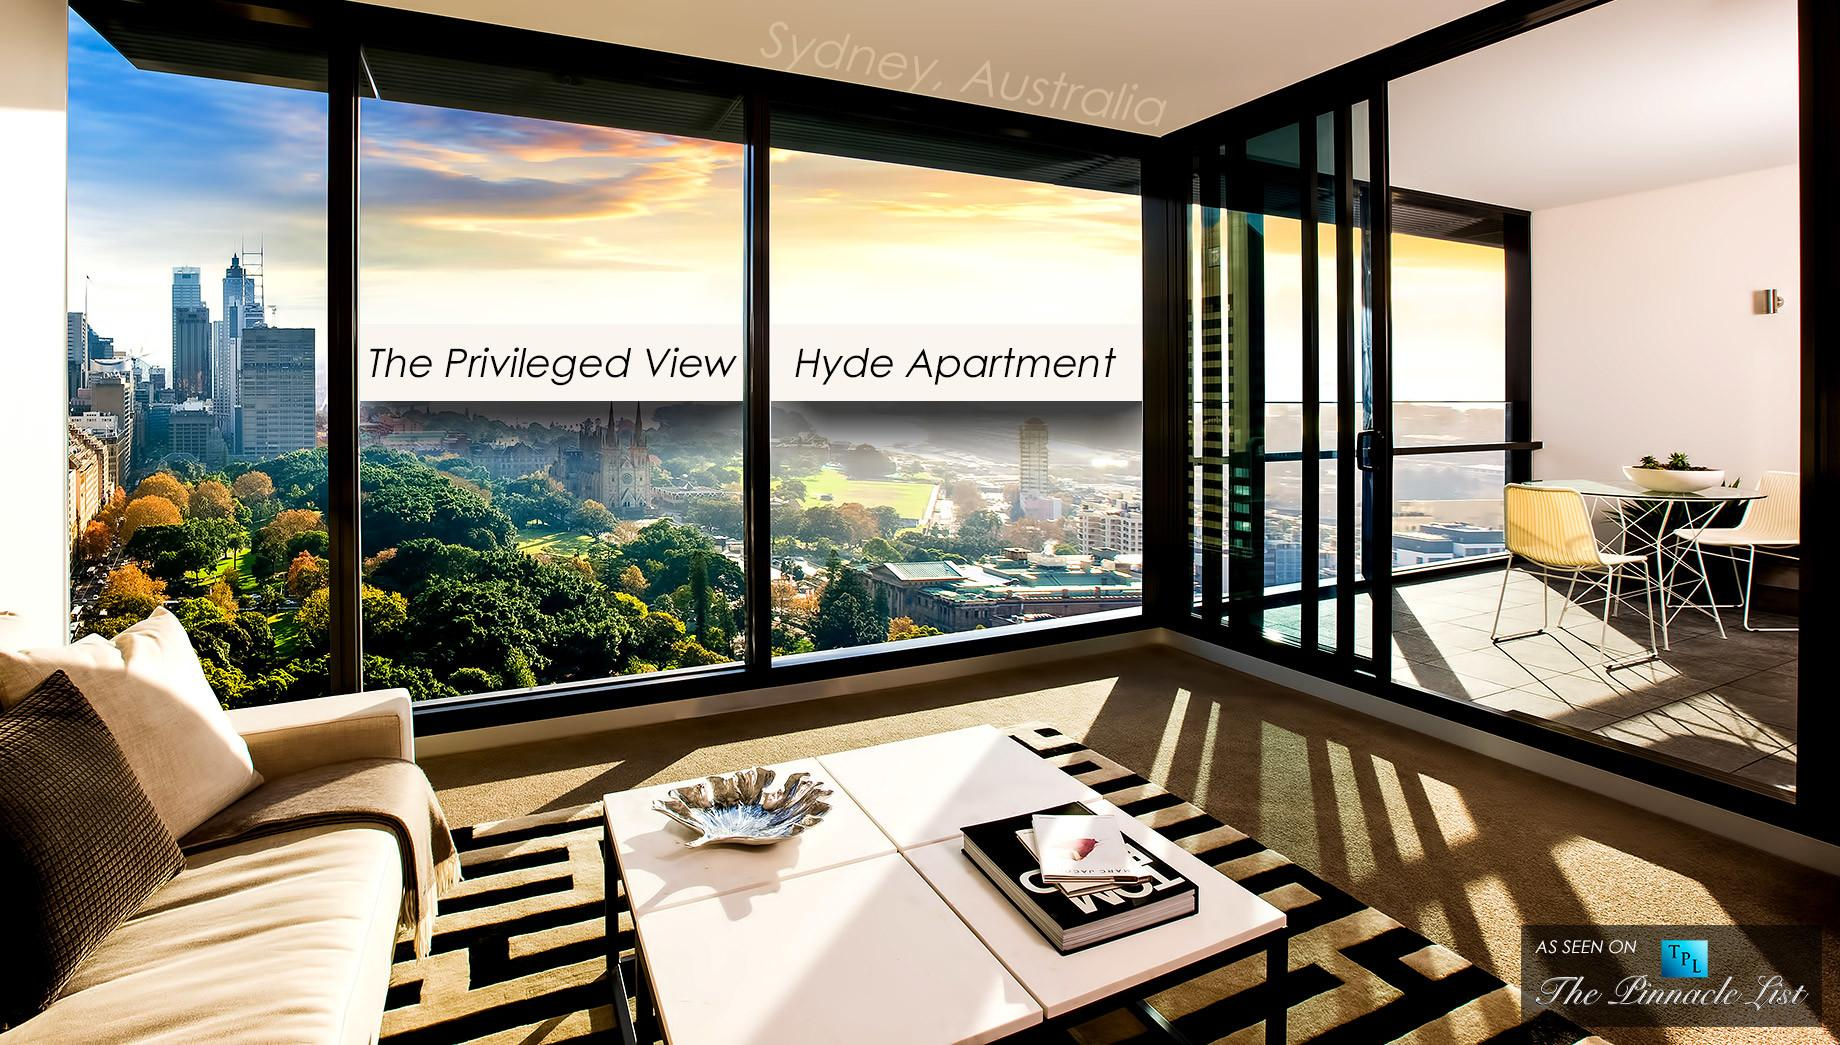 Privileged Luxury Hyde Apartment Building